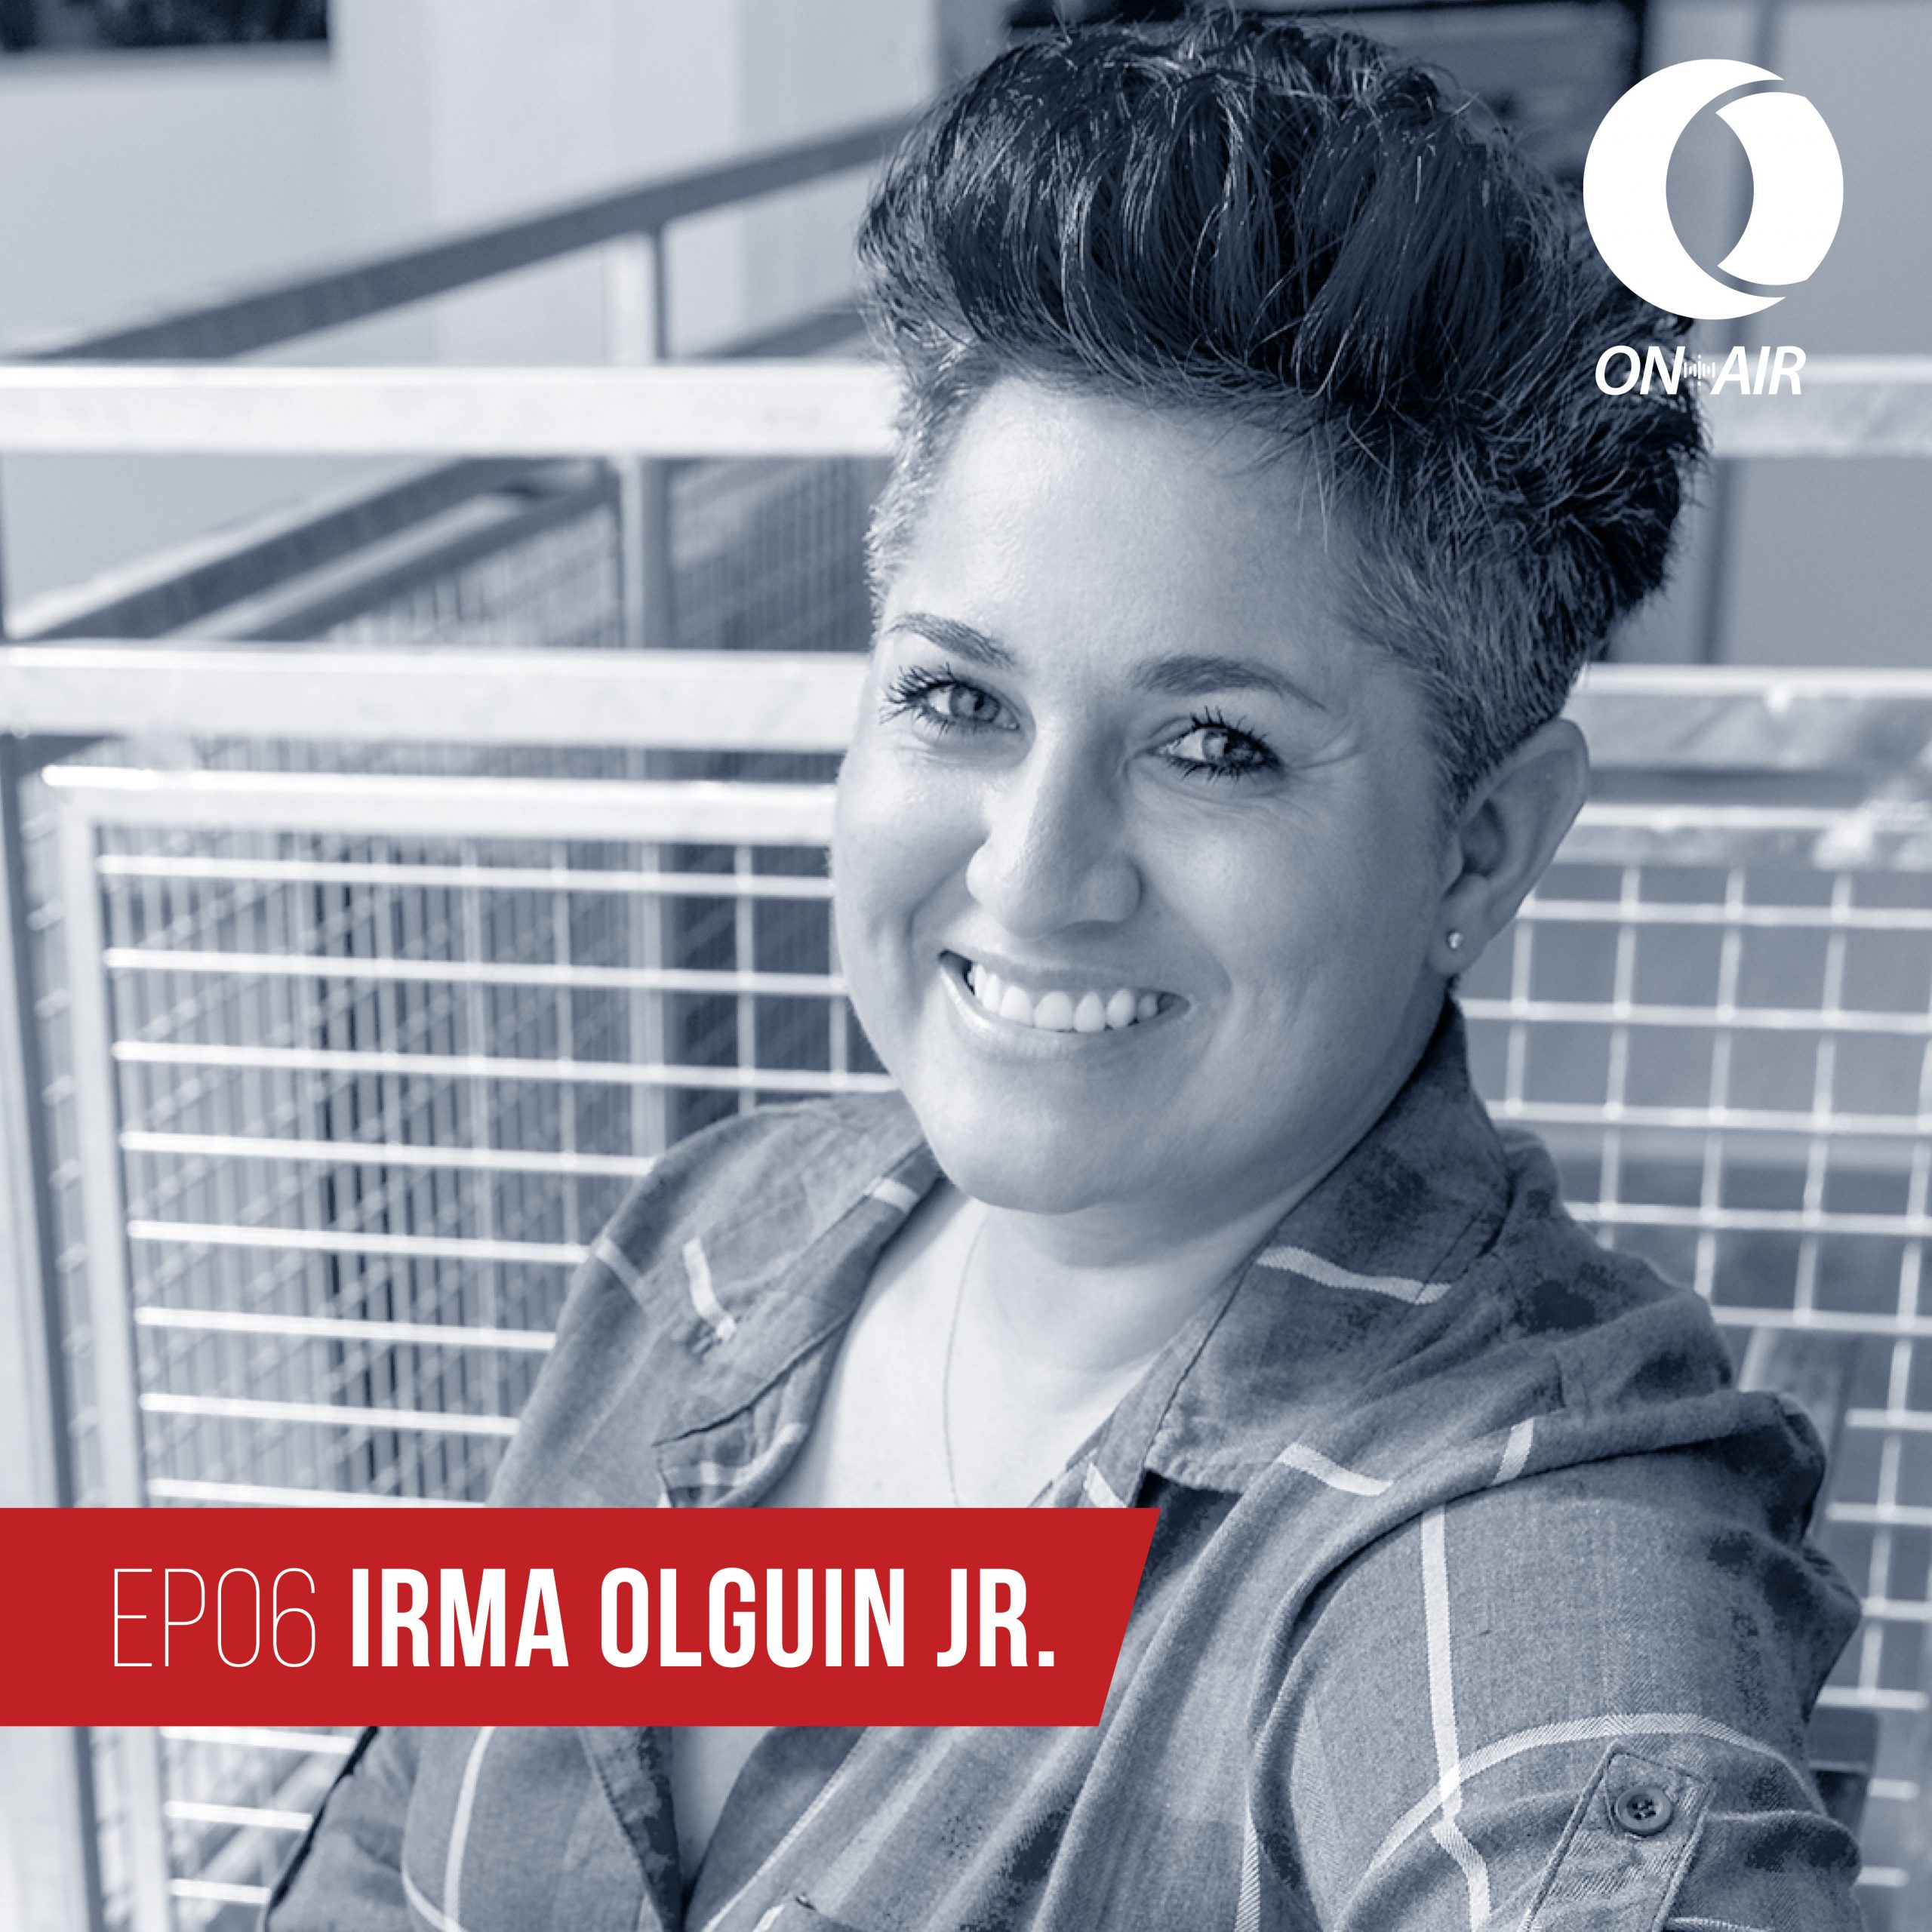 Irma Olguin Jr., Co-Founder and CEO of Bitwise Industries